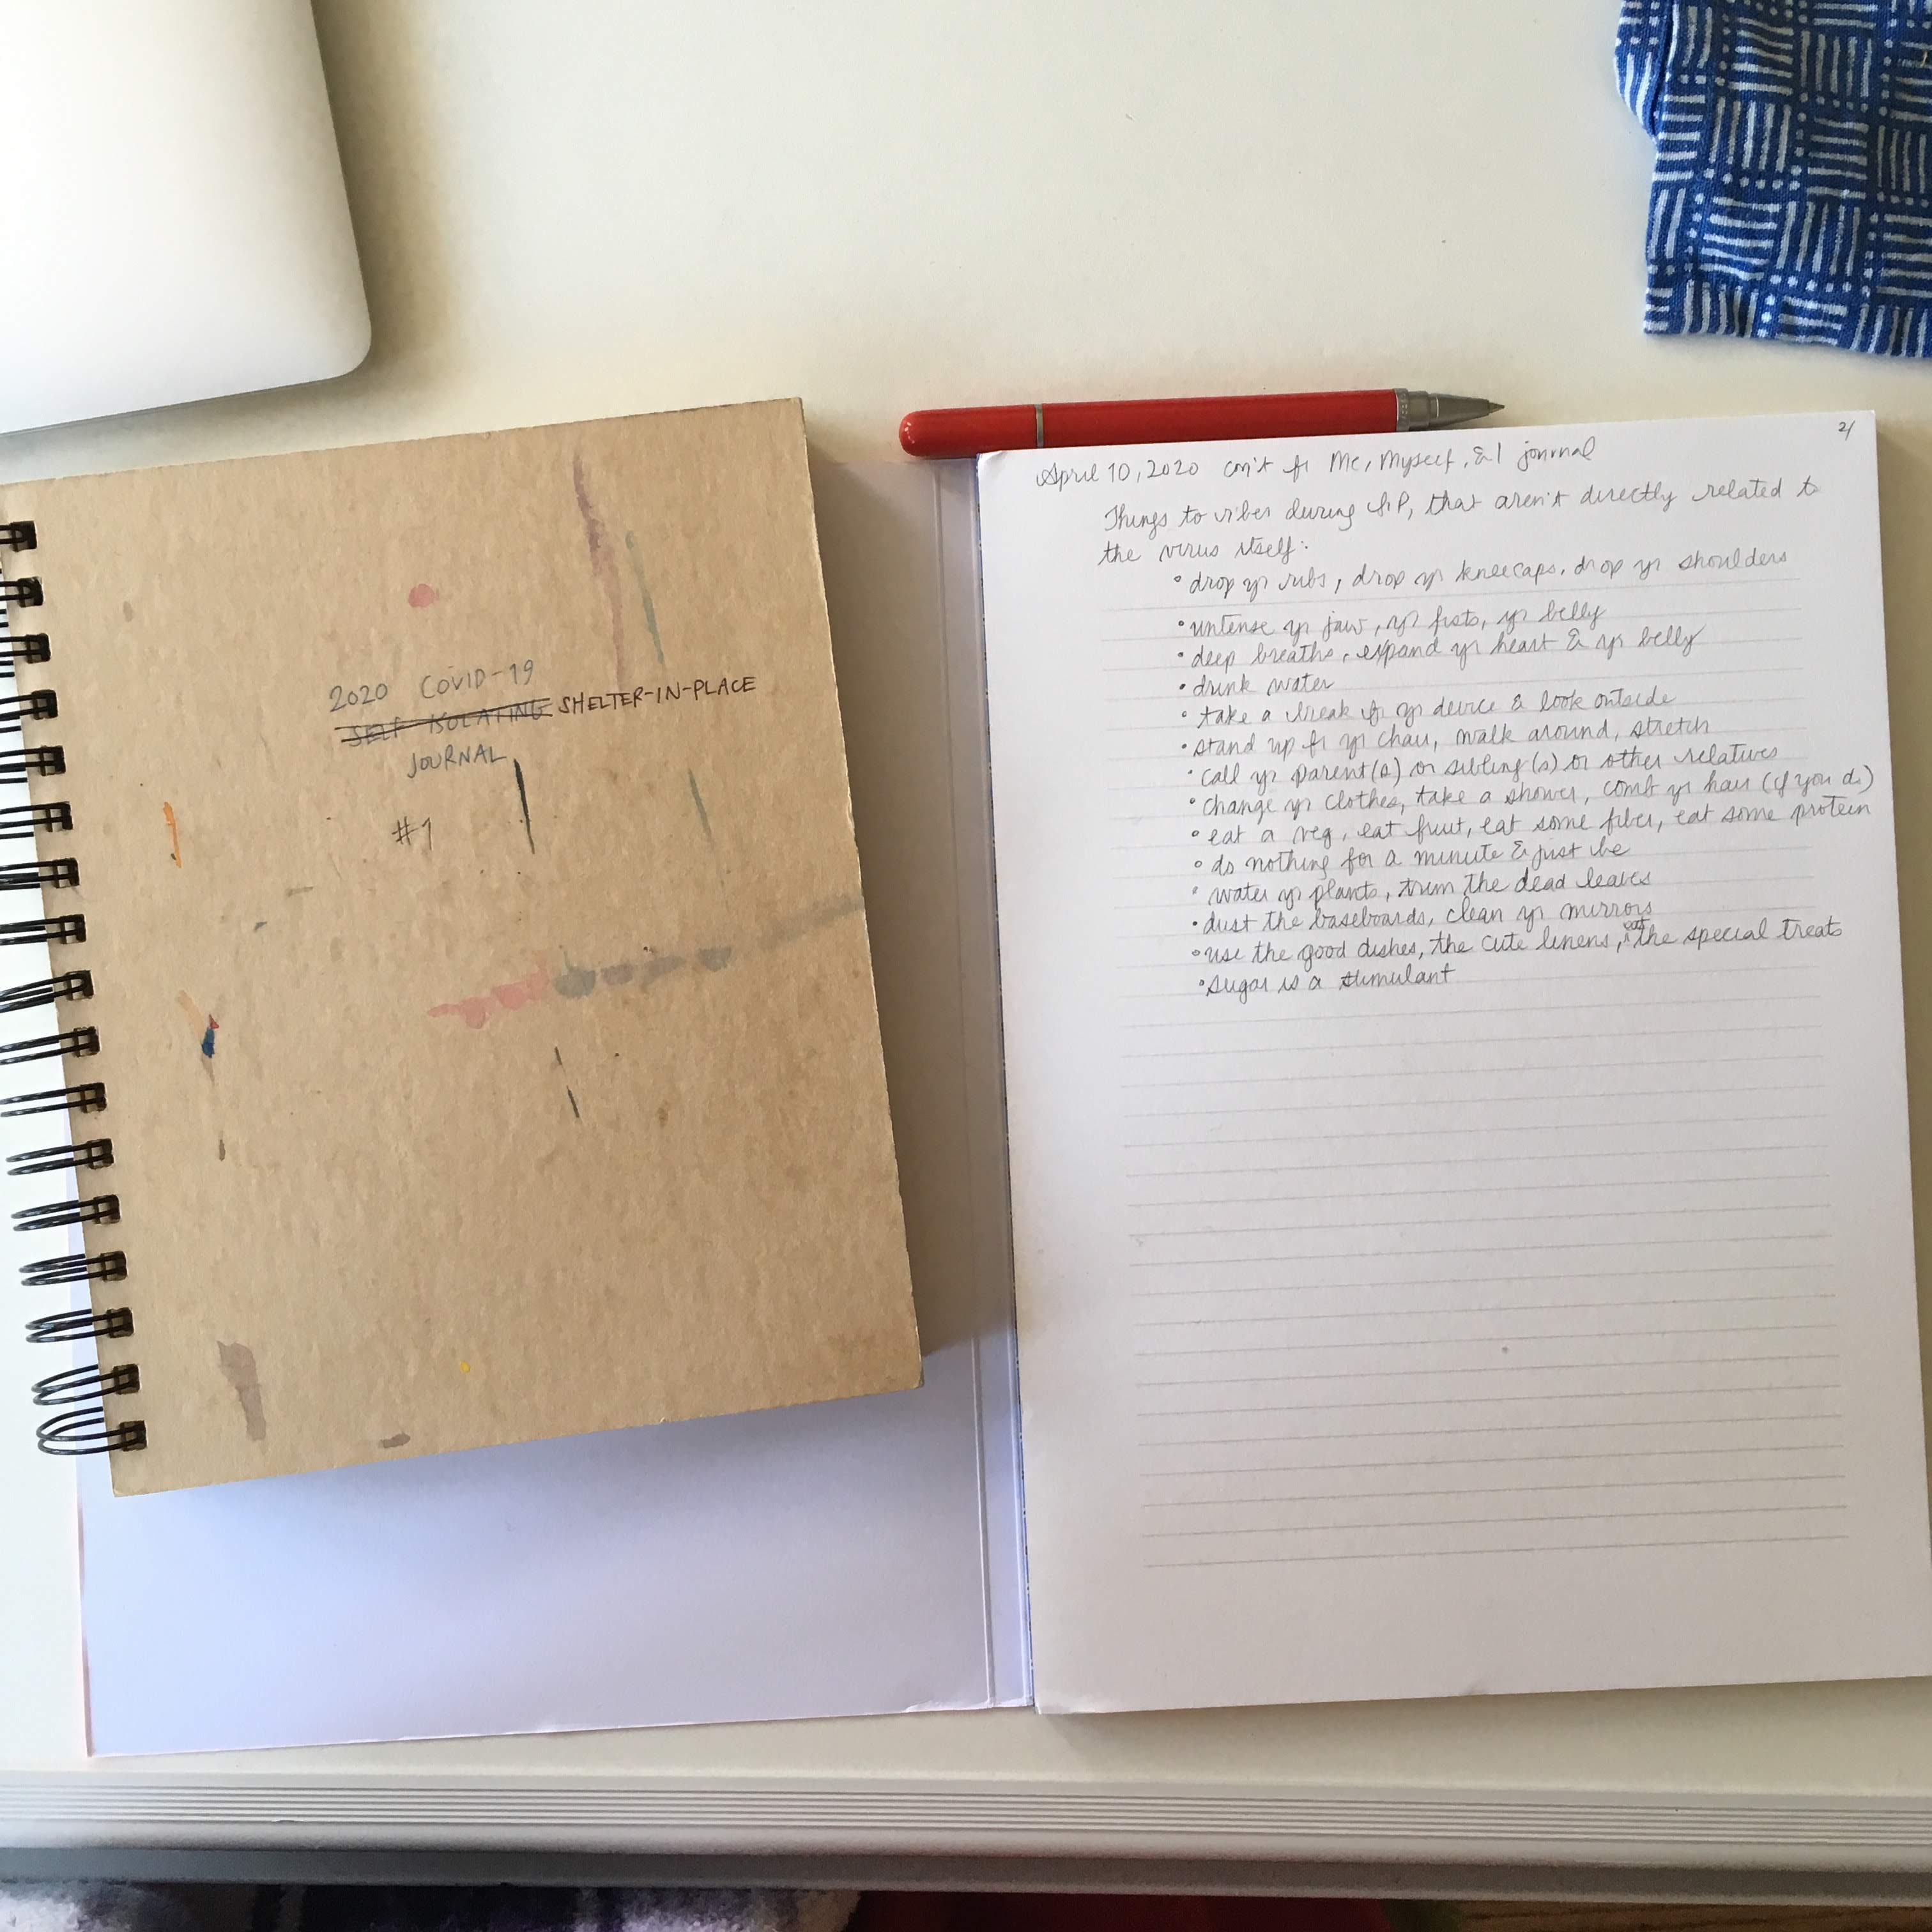 Two notebooks next to each other, one spiral-bound and the other not